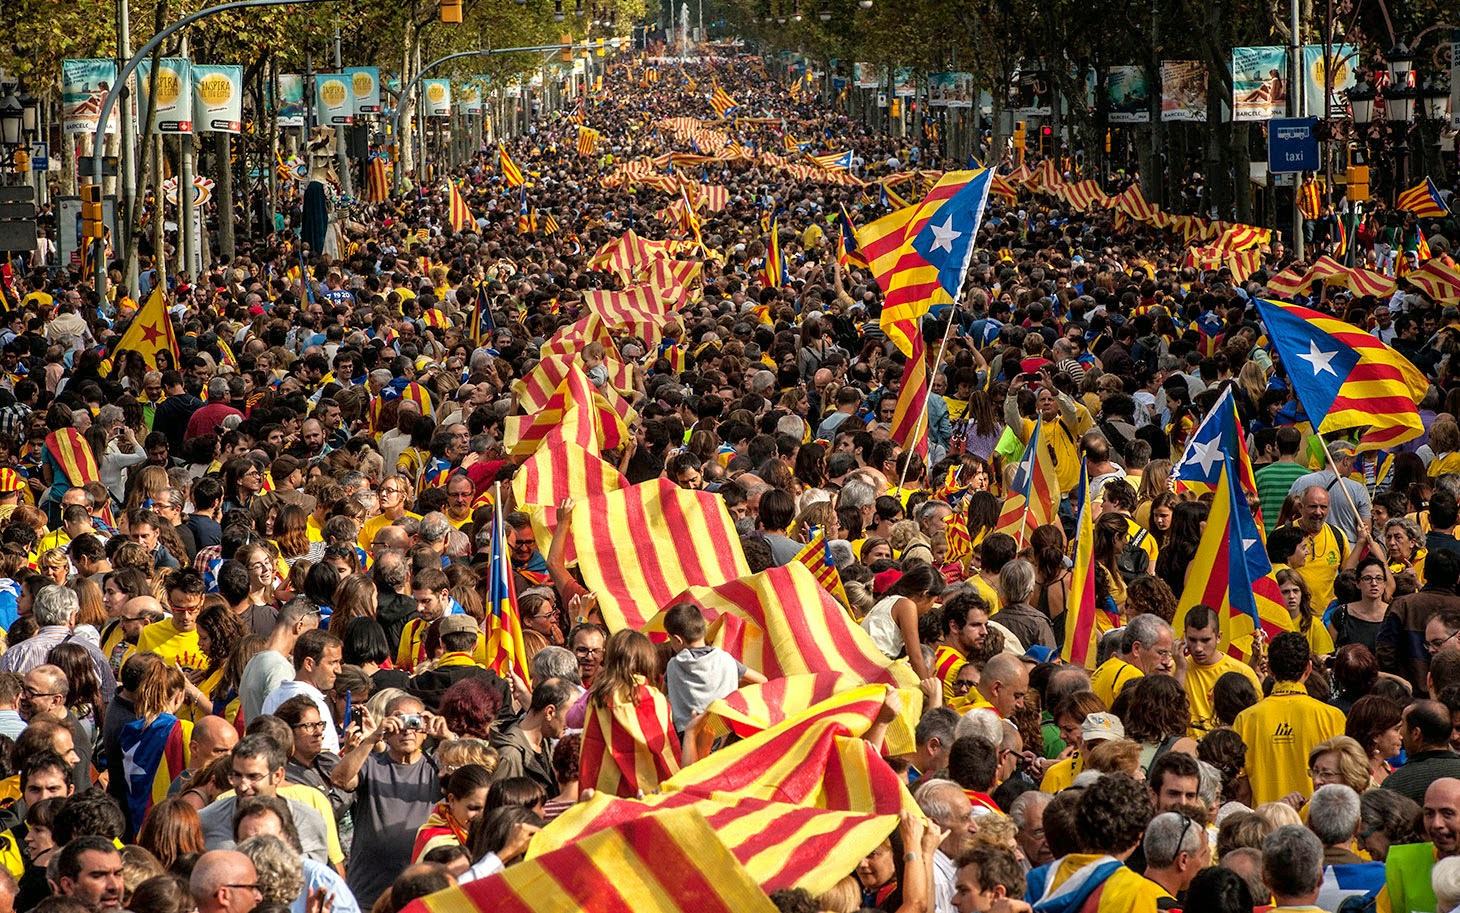 http://www.presstv.com/detail/2014/10/03/380934/catalonia-defies-spain-court-ruling/